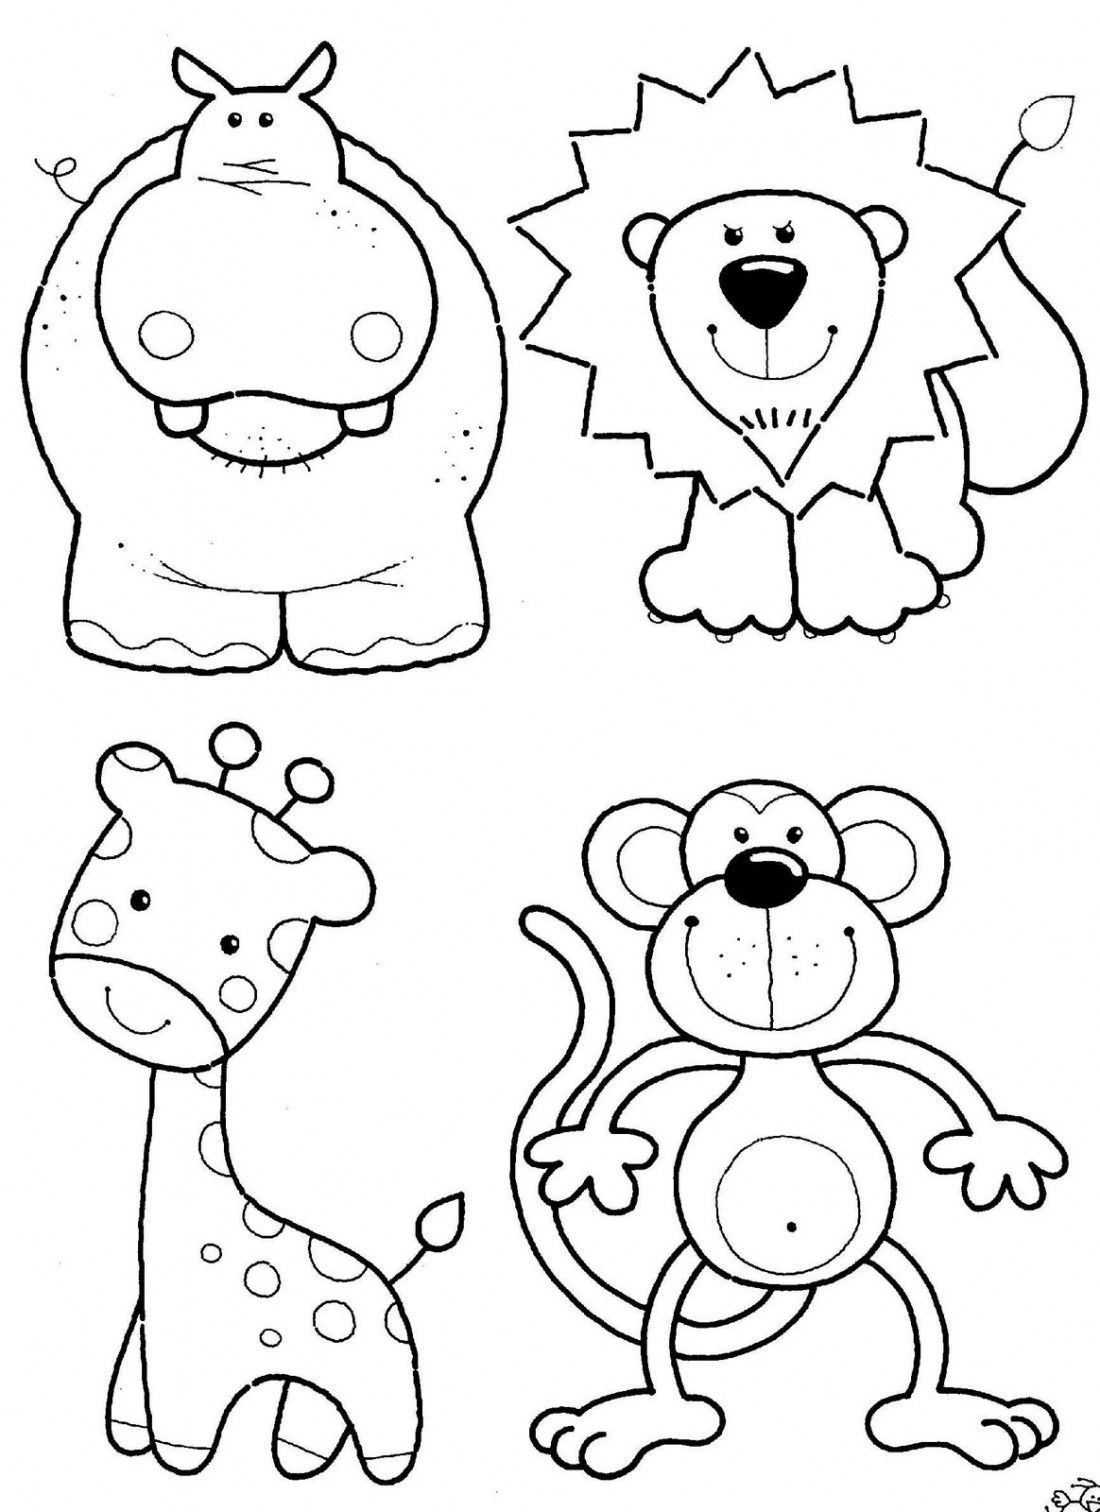 Free Animal Coloring Pages Kids I'd Color Or Paint These